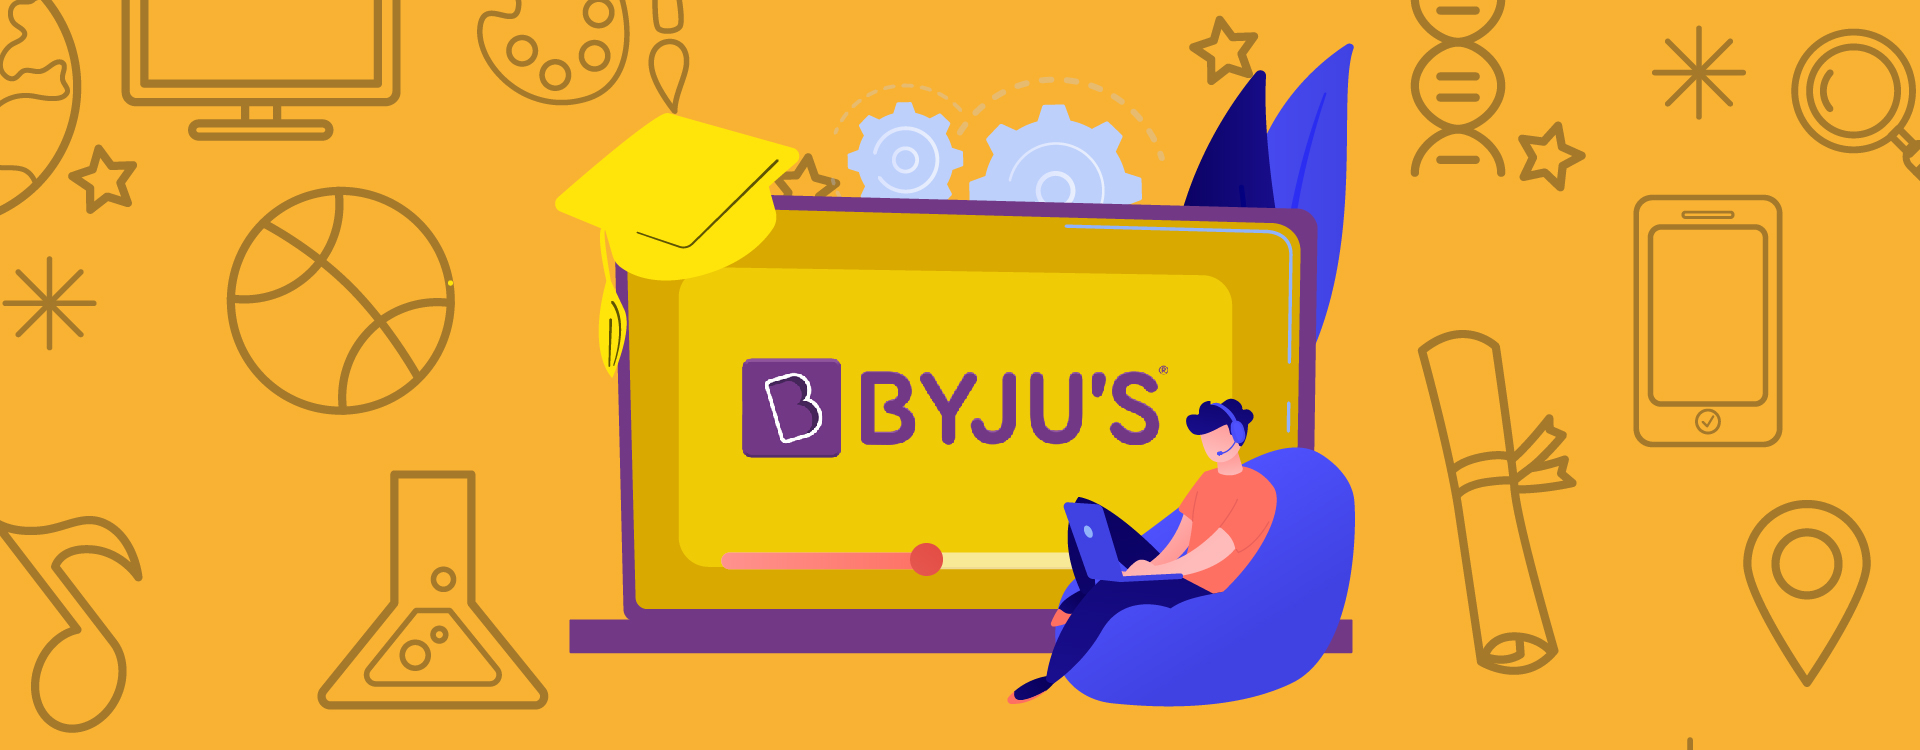 EdTech Unicorn BYJUS is all set for its third largest acquisition